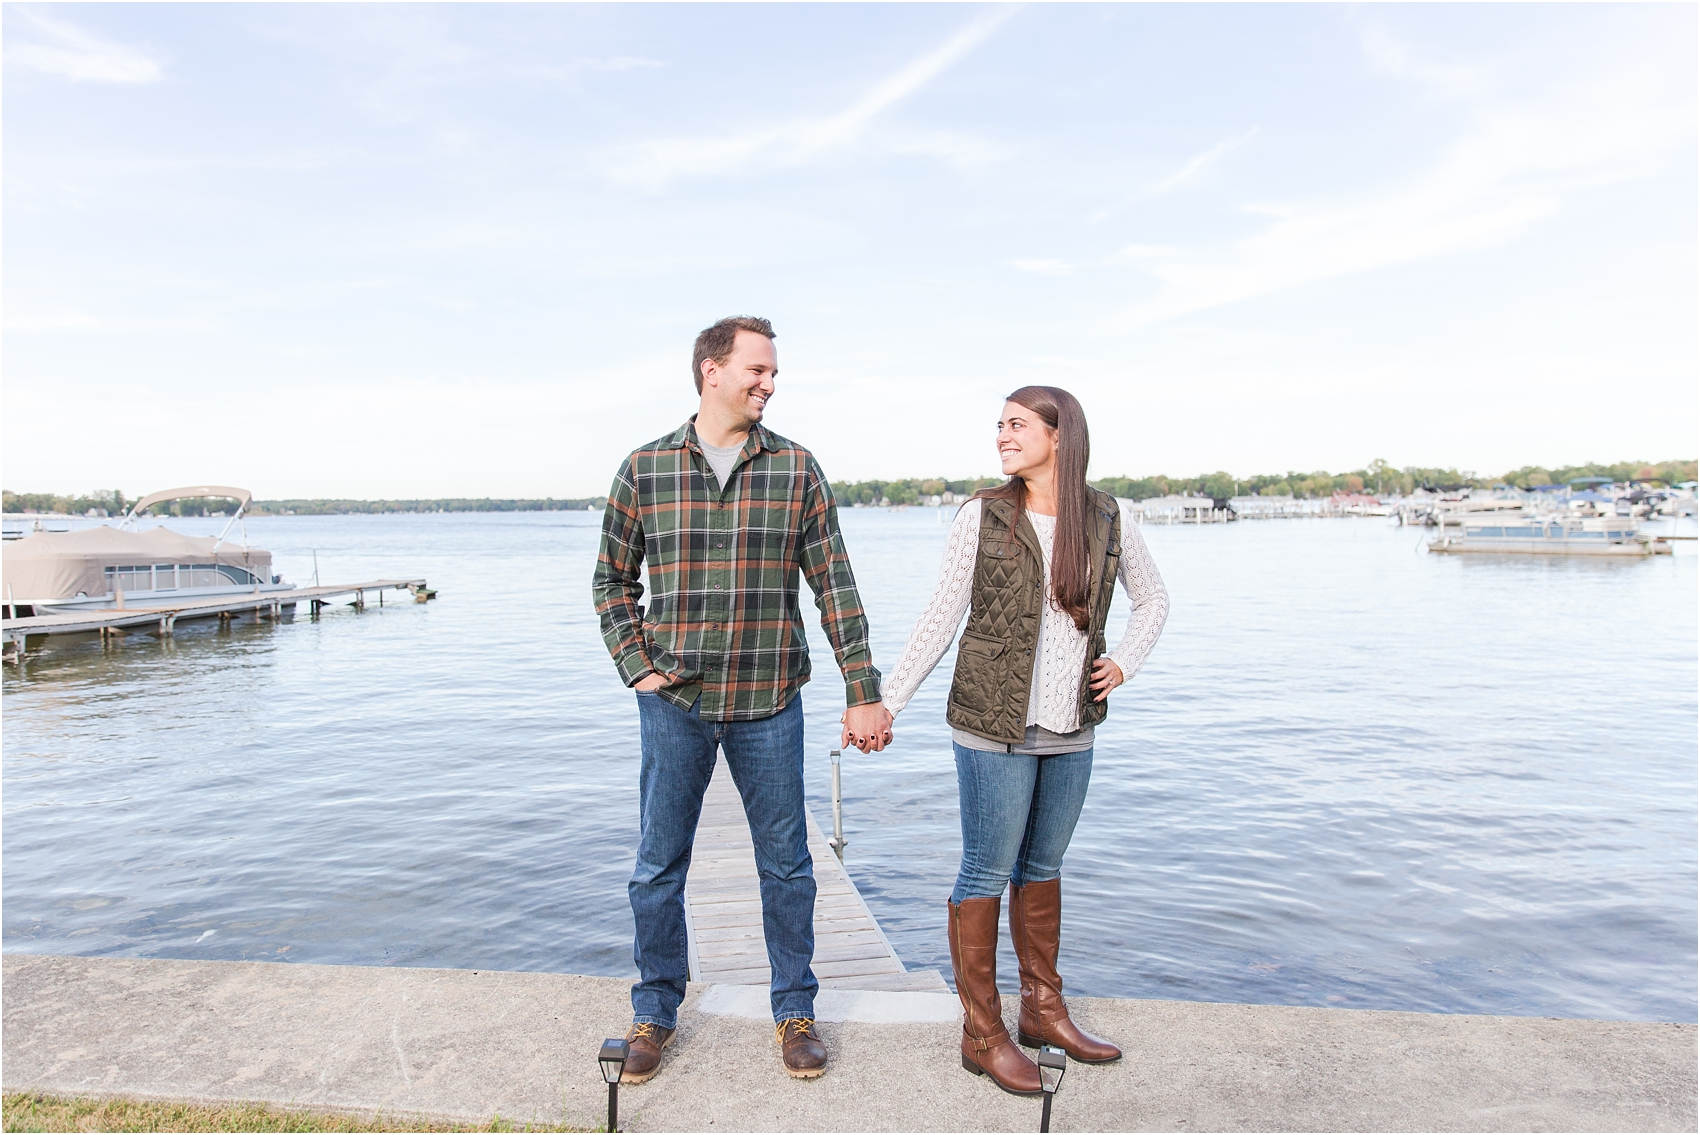 relaxed-autumn-engagement-photos-at-hudson-mills-metropark-in-dexter-mi-by-courtney-carolyn-photography_0003.jpg